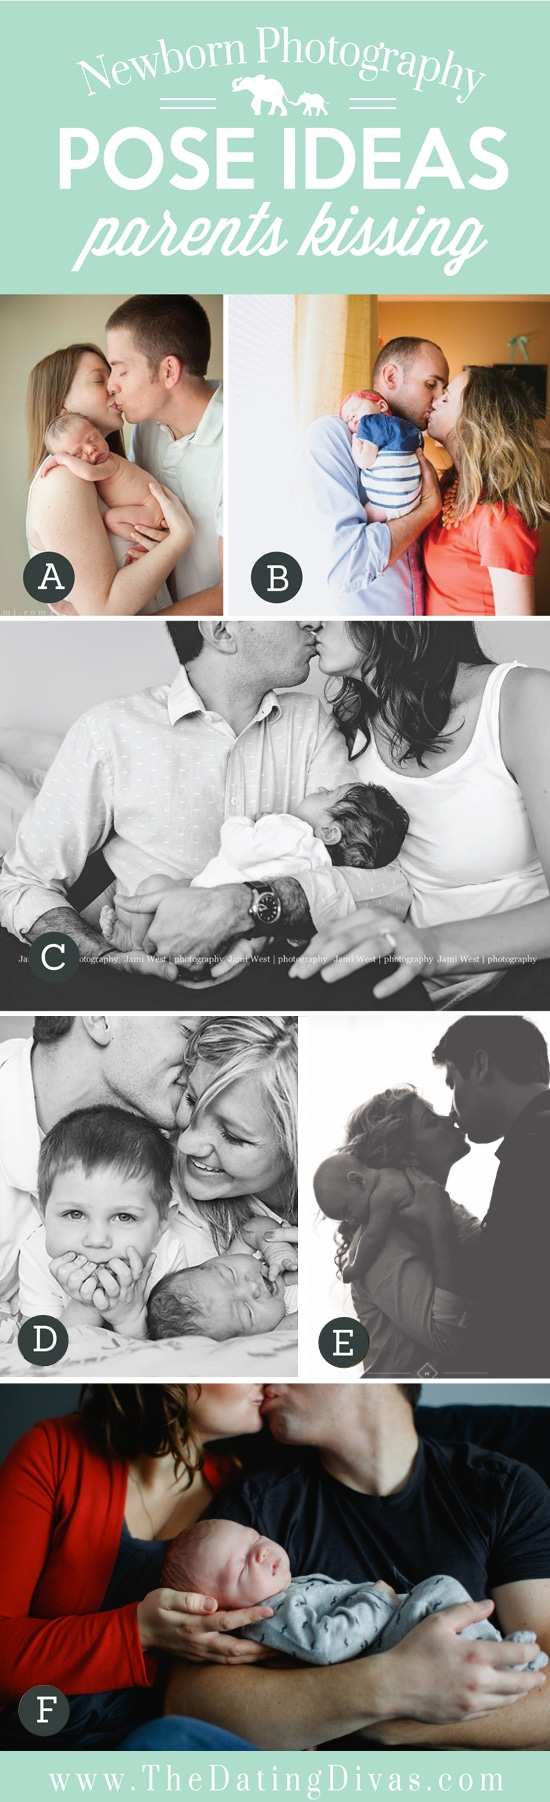 Pose Ideas Parents Kissing